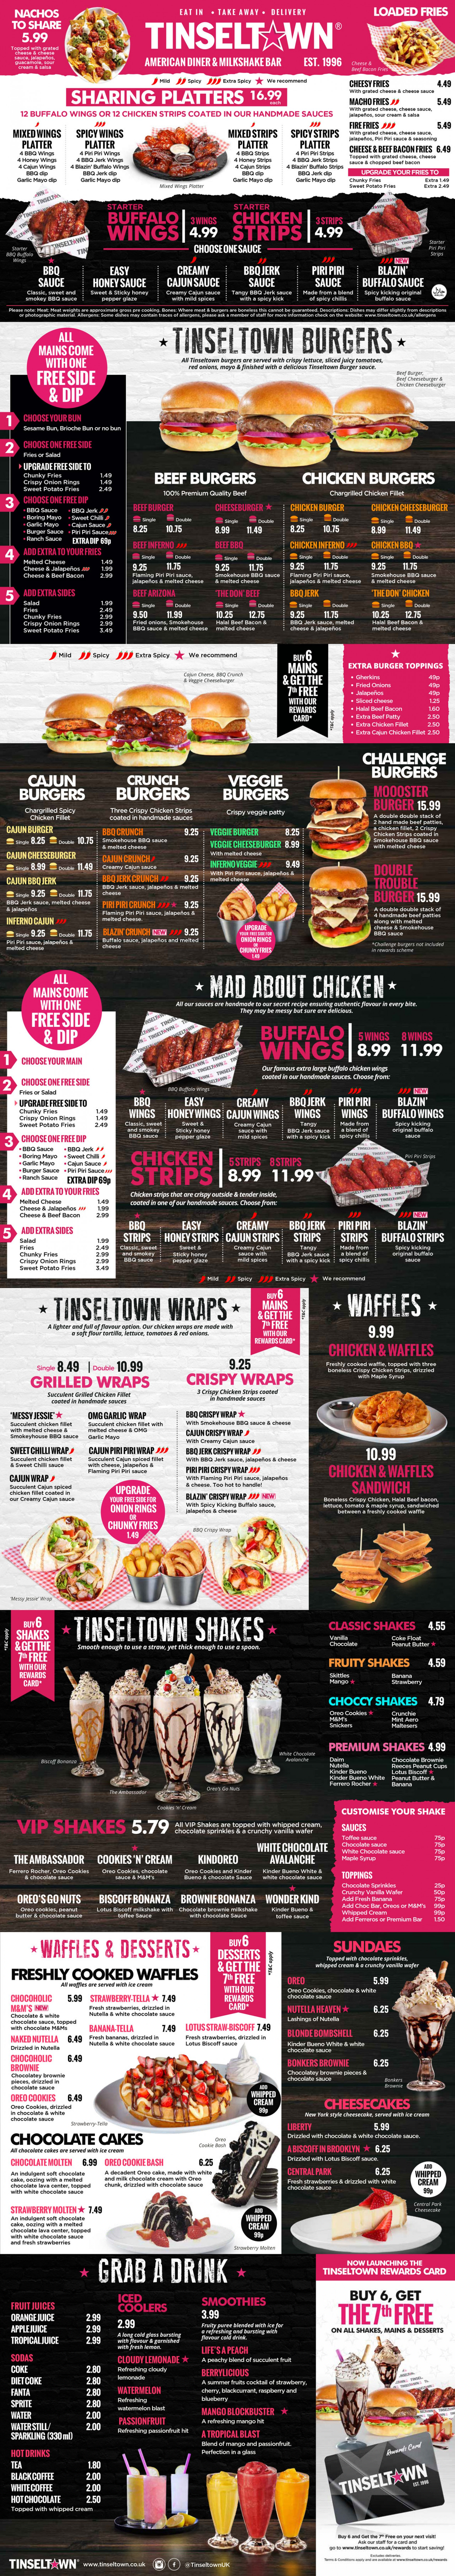 Tinseltown menu